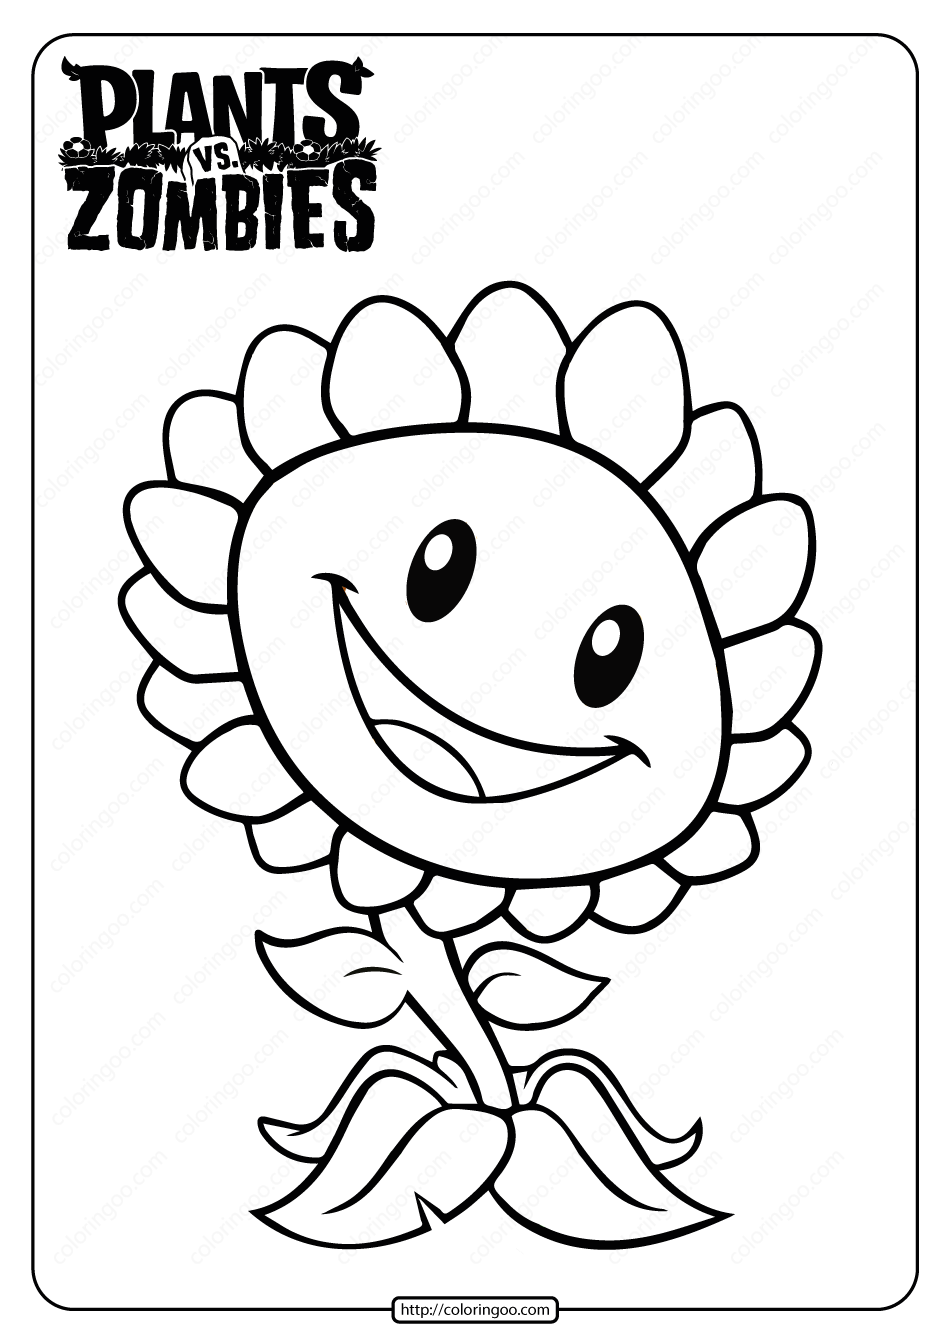 Plants Vs Zombies Sunflower Coloring Page In 2020 Sunflower Coloring Pages Coloring Pages Love Coloring Pages